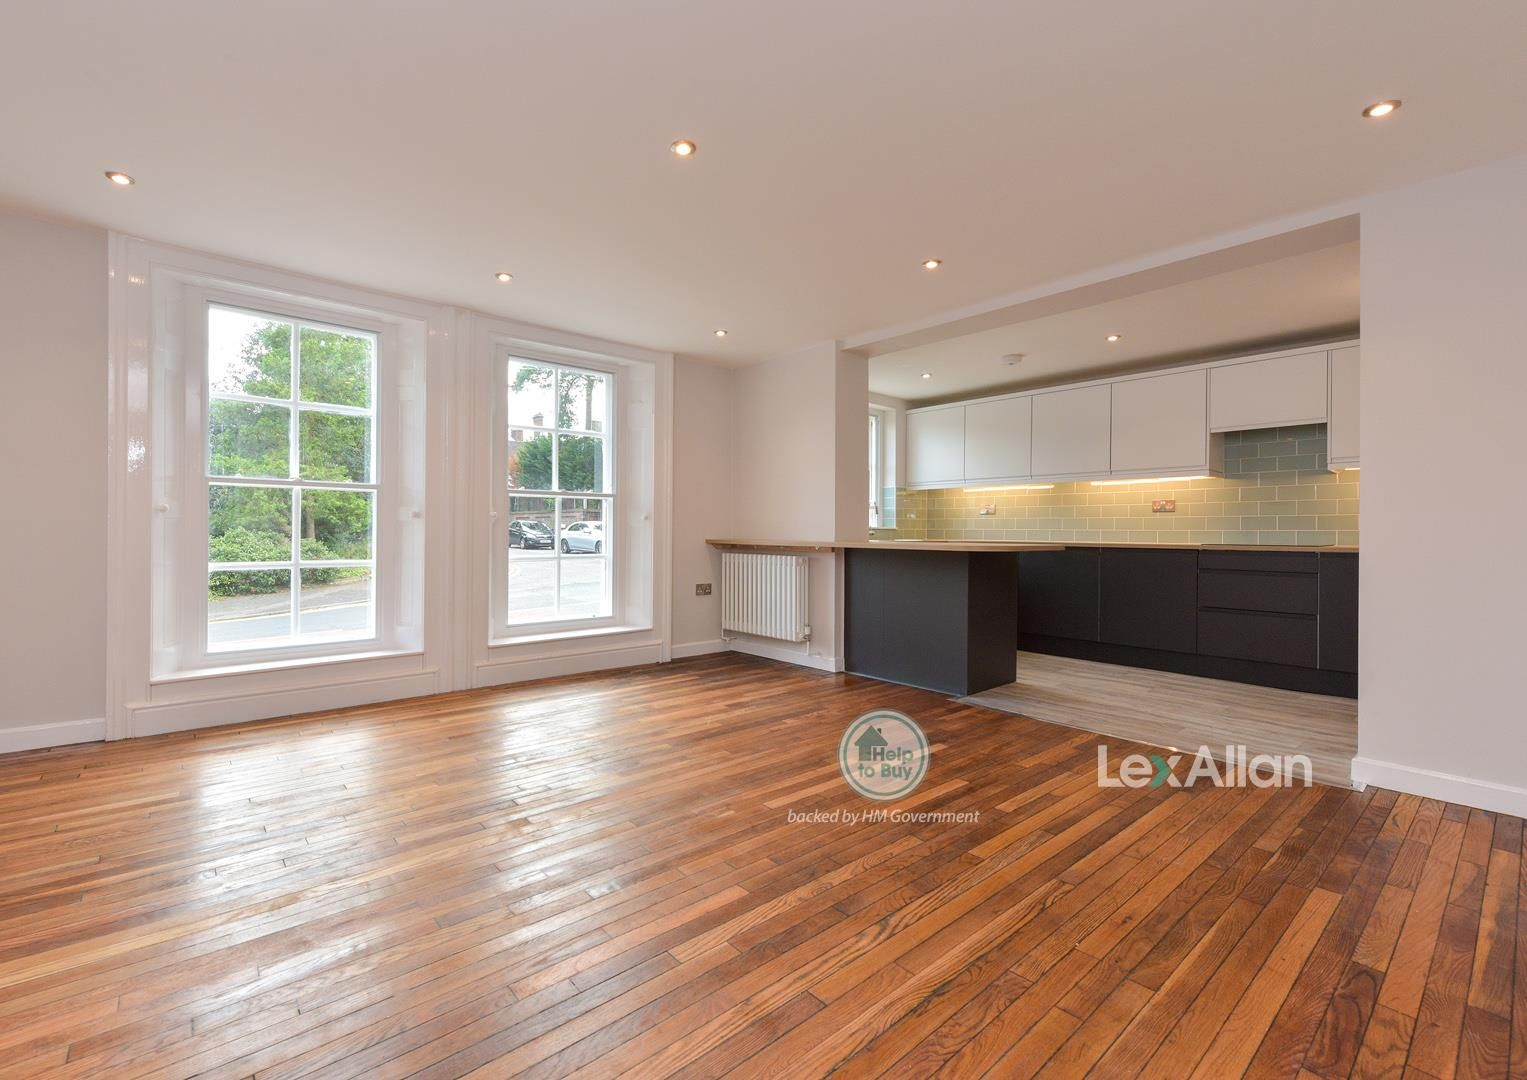 2 bed apartment for sale, DY8